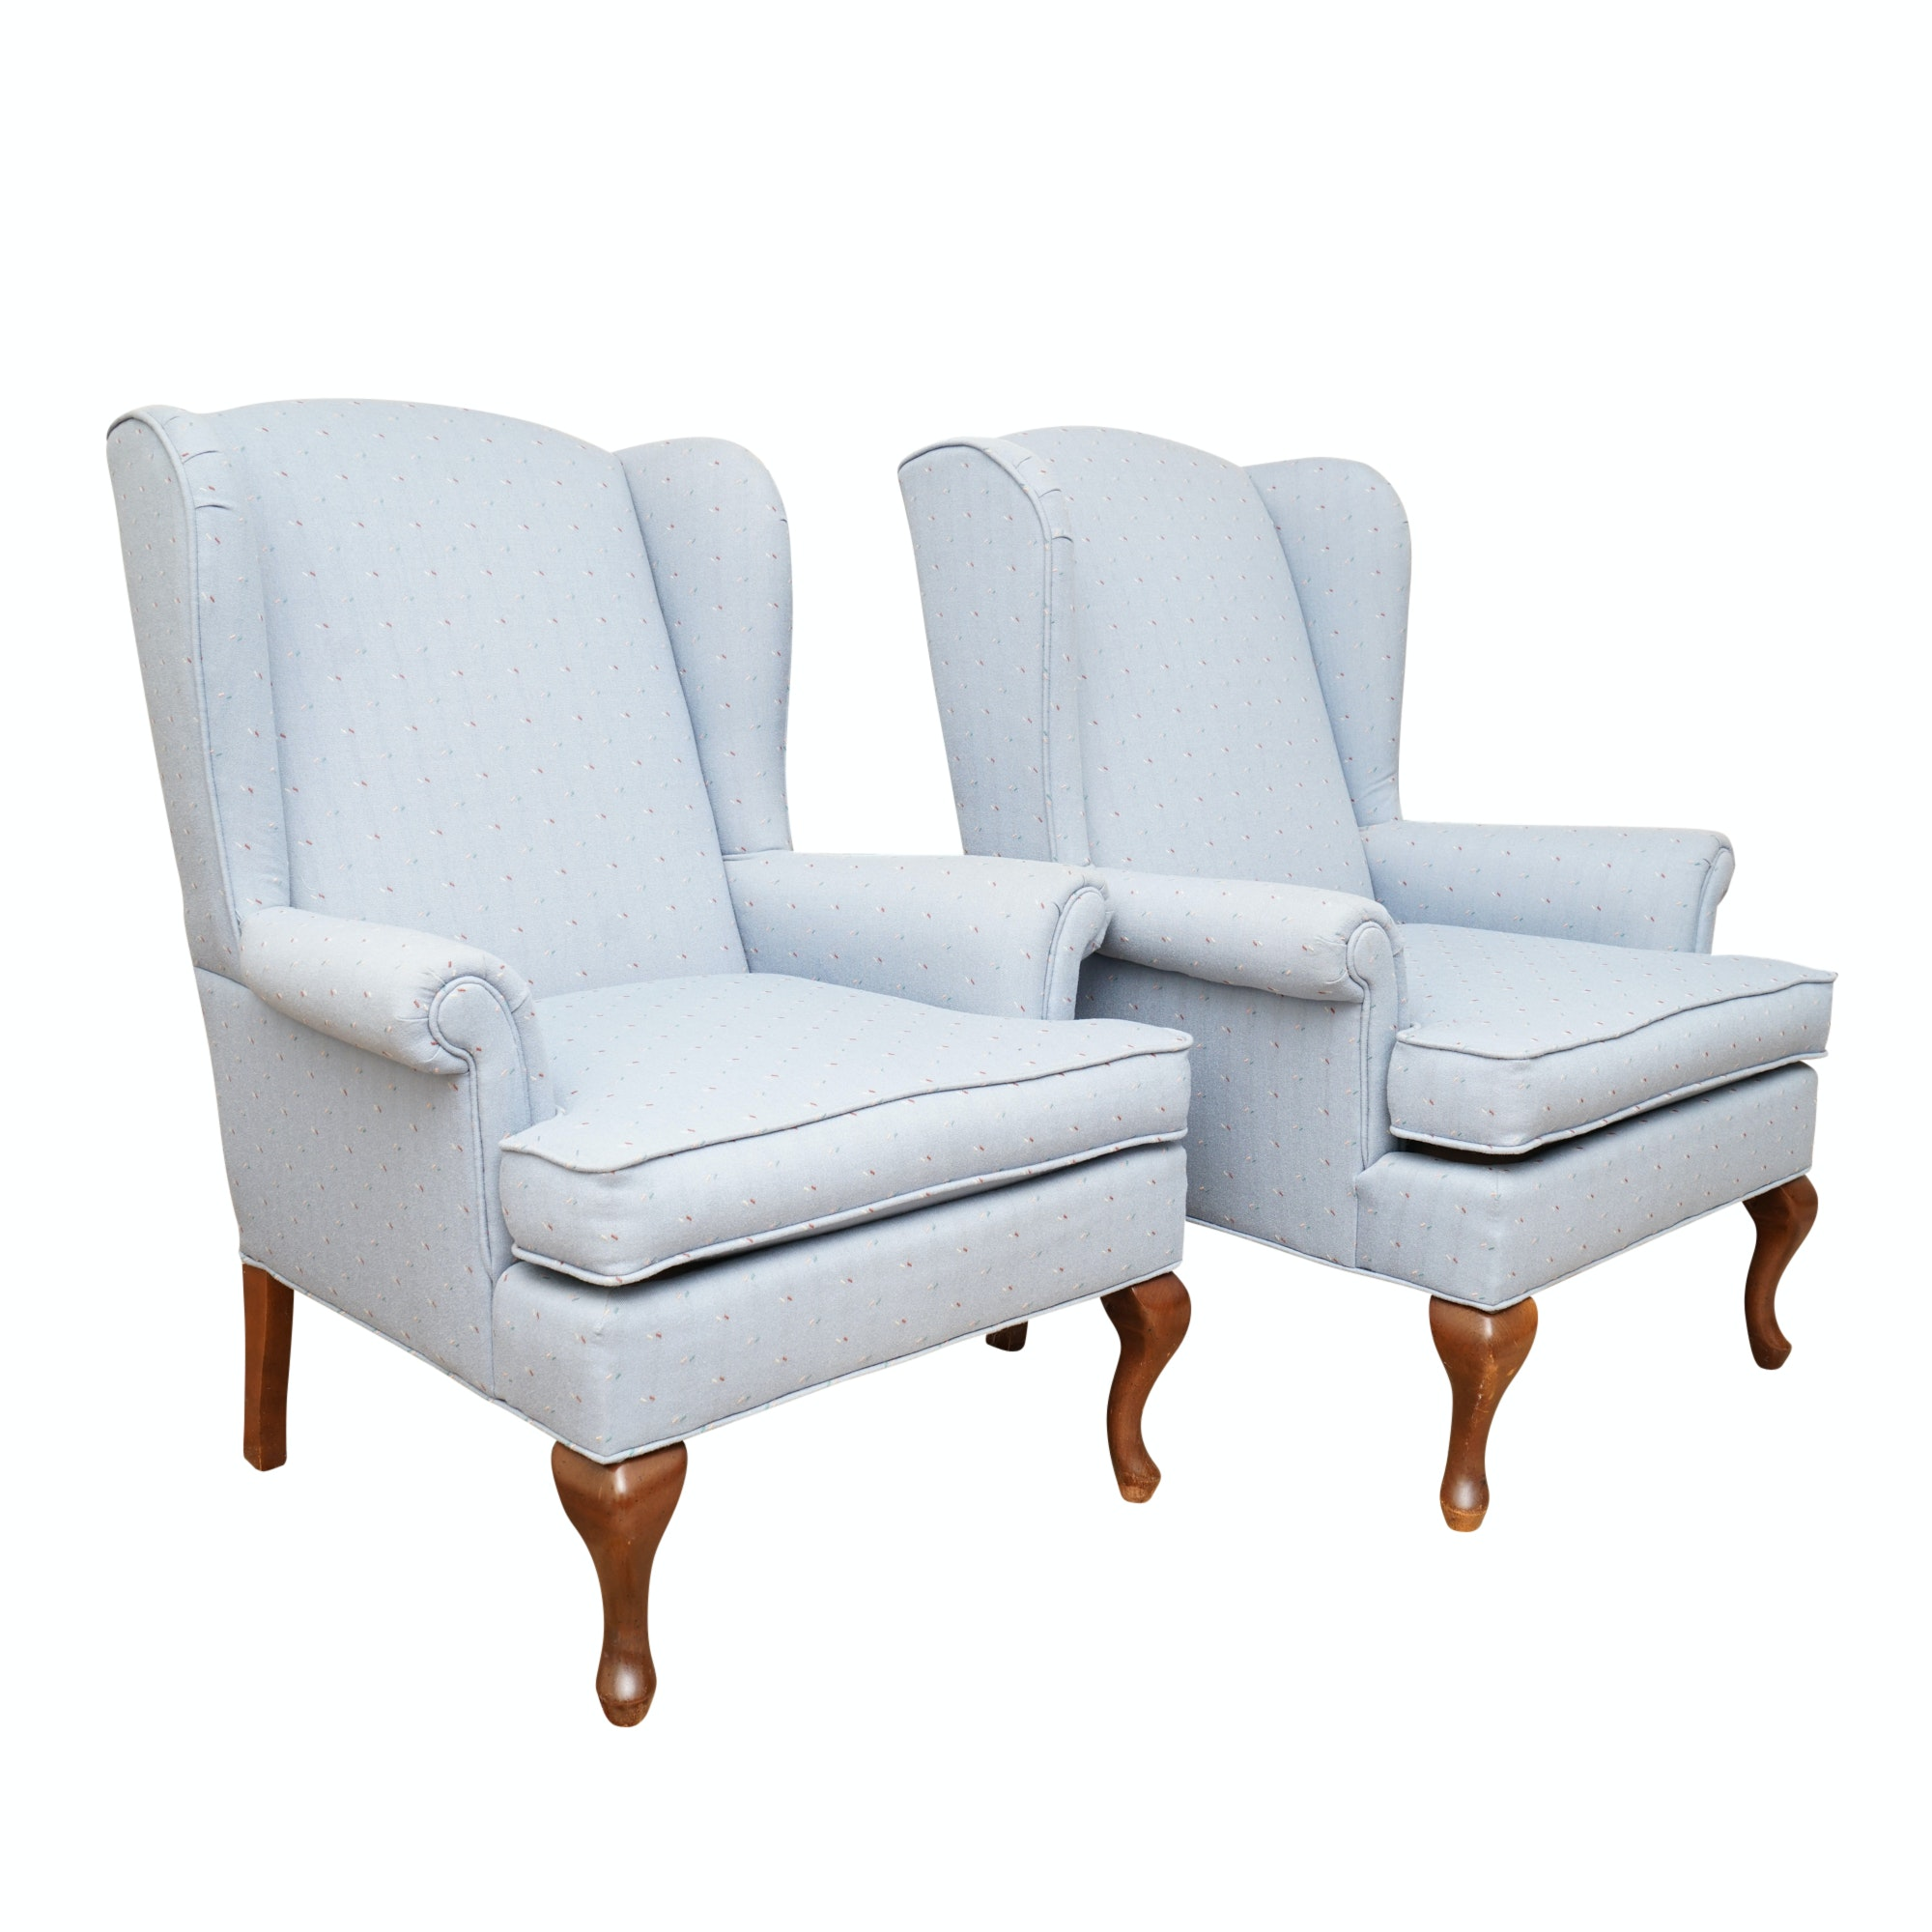 Upholstered Wingback Chairs by Norwalk